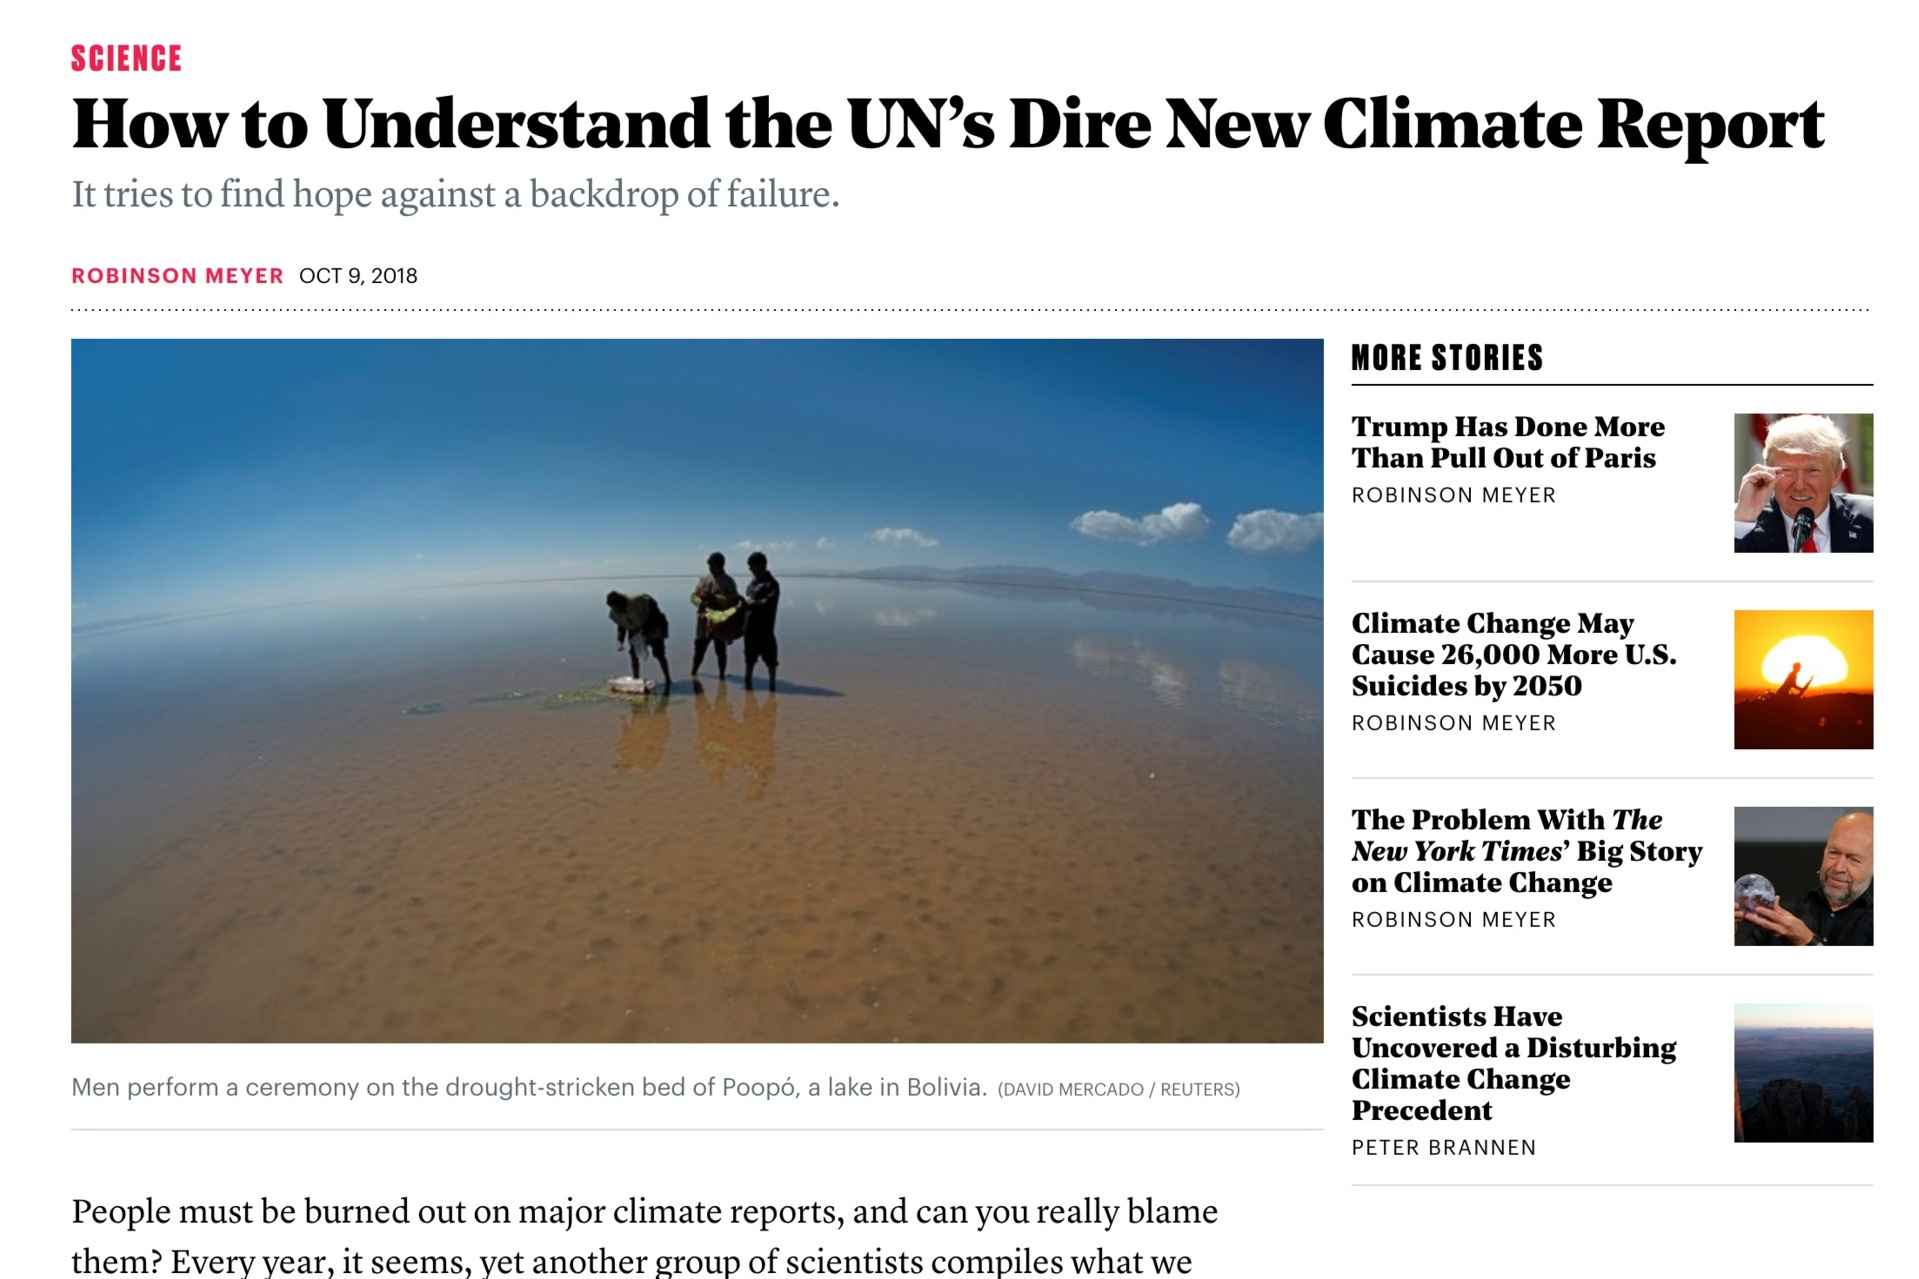 - How to Understand the UN's Dire New Climate Reportby Robinson Meyer, October 9, 2018, The Atlantic